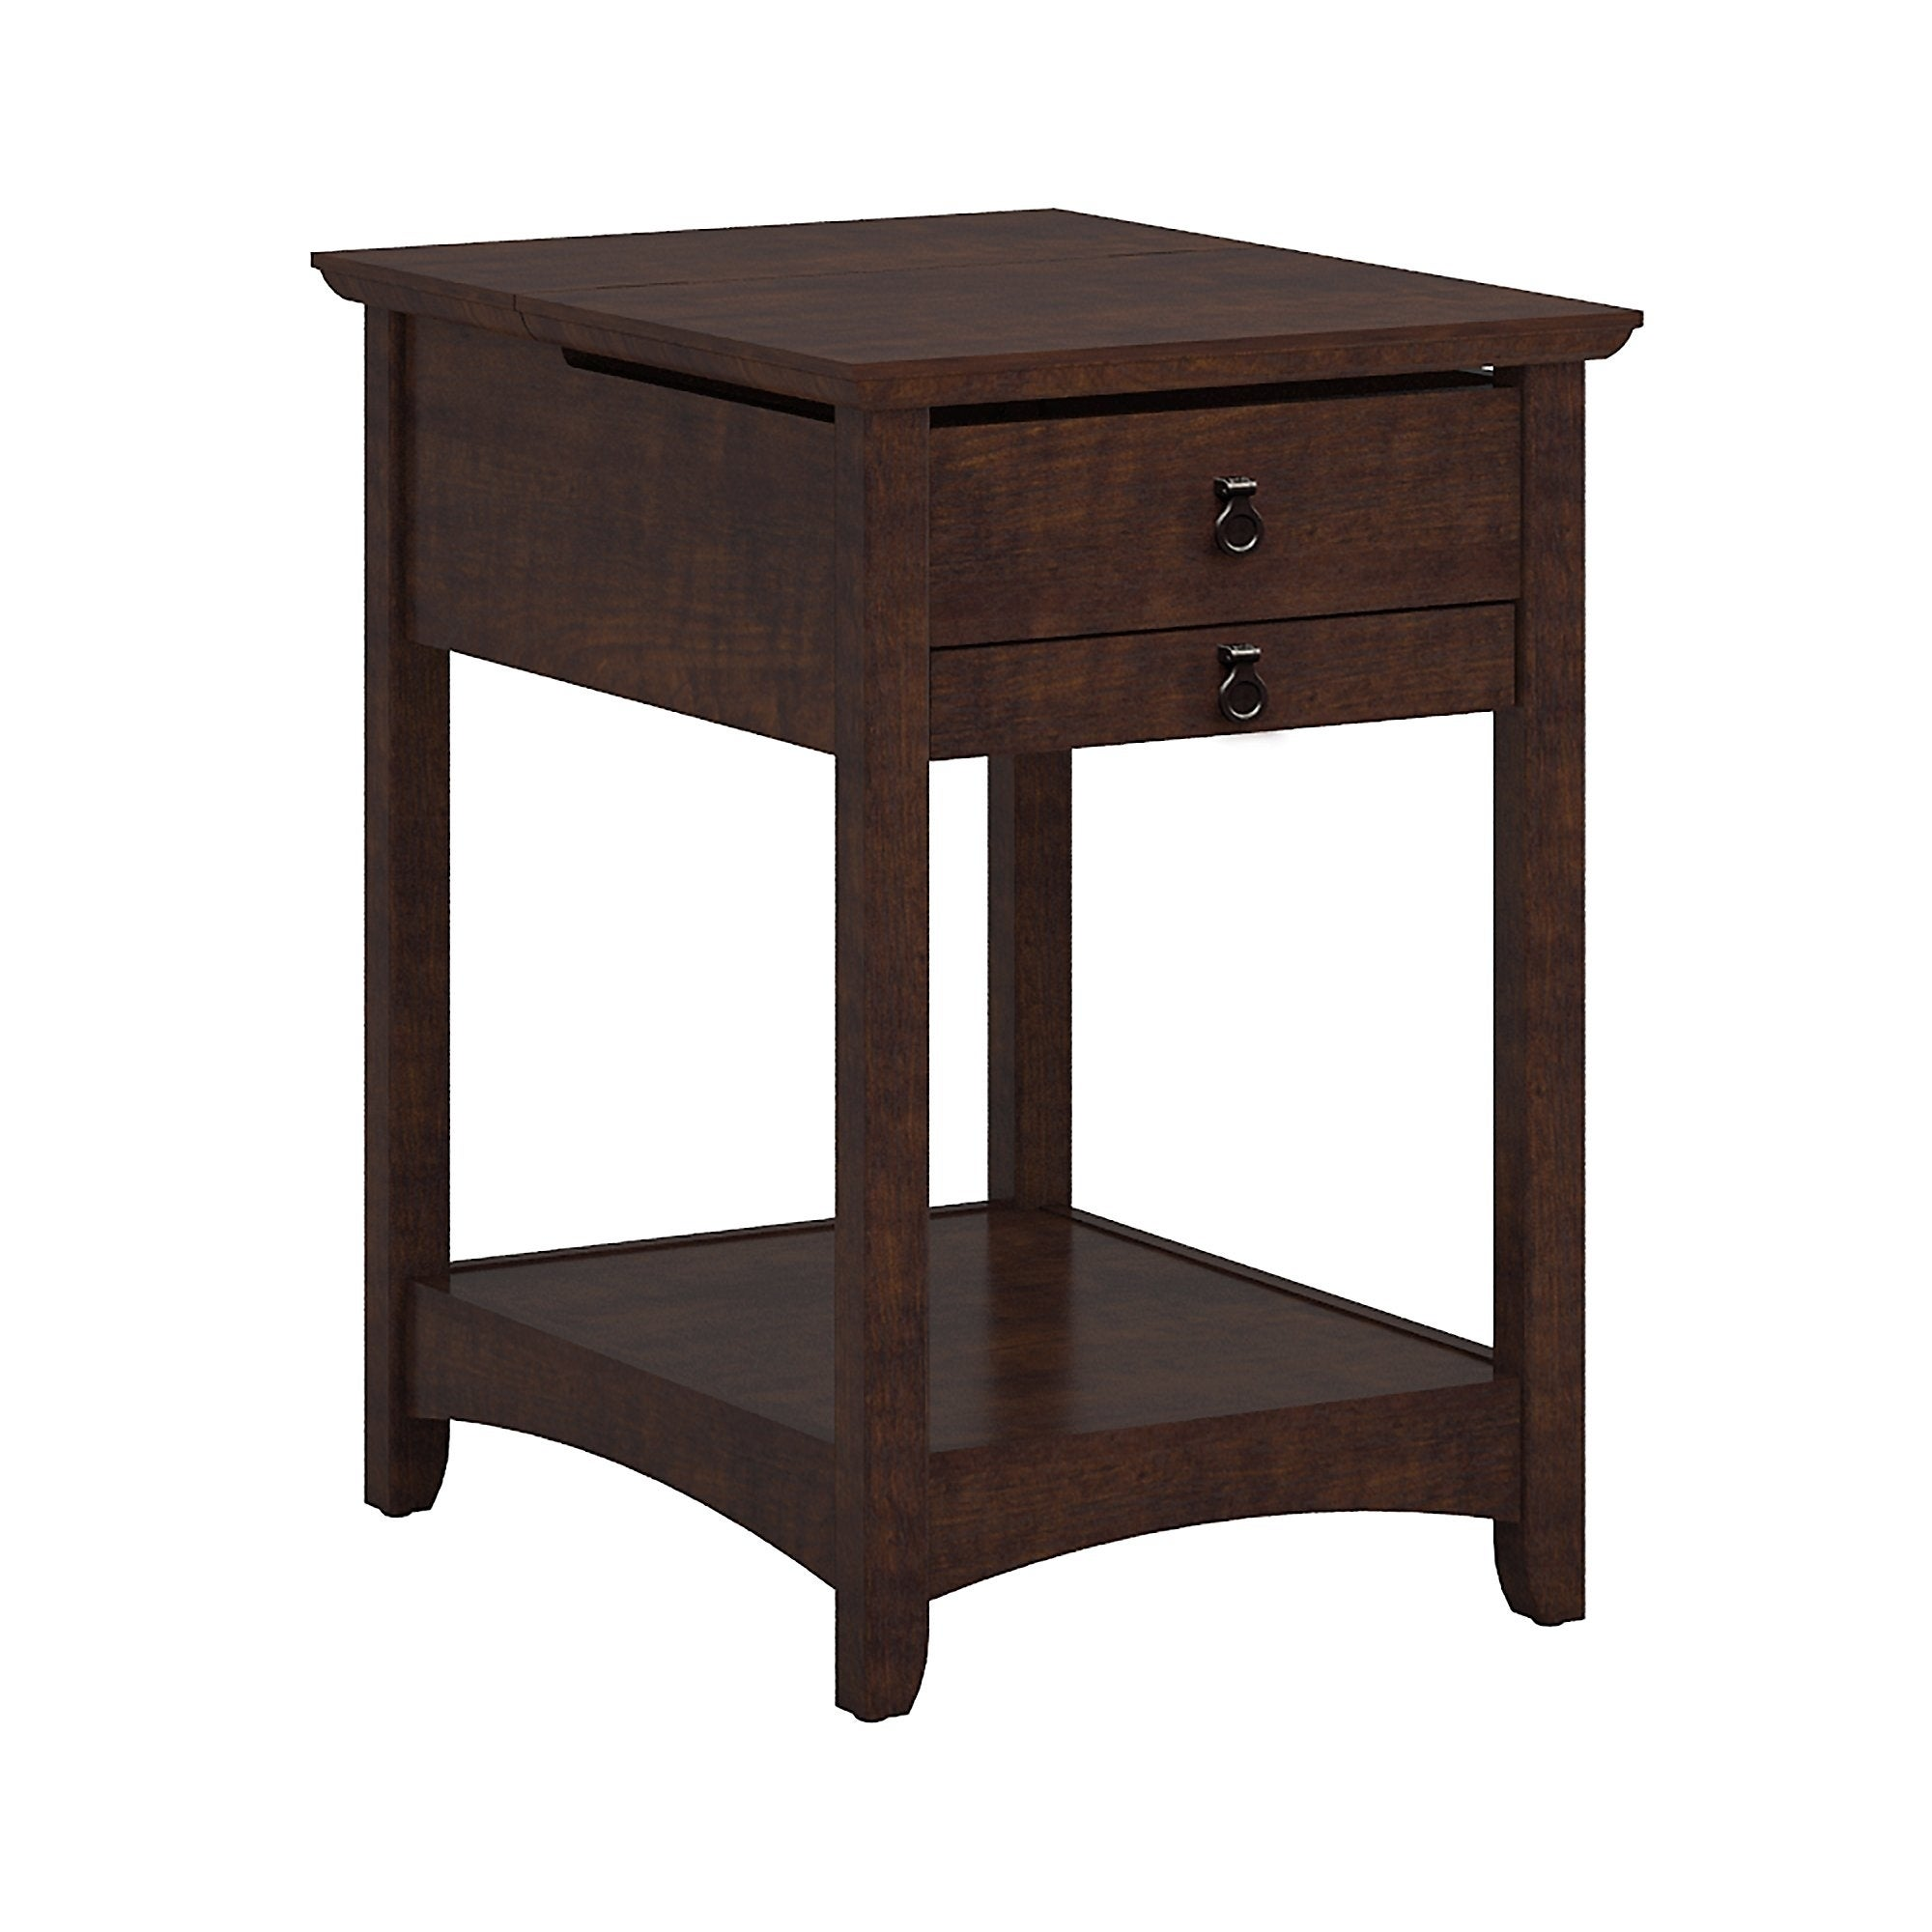 Bush Furniture Buena Vista Laptop End Table In Madison Cherry   Free  Shipping Today   Overstock.com   16251231